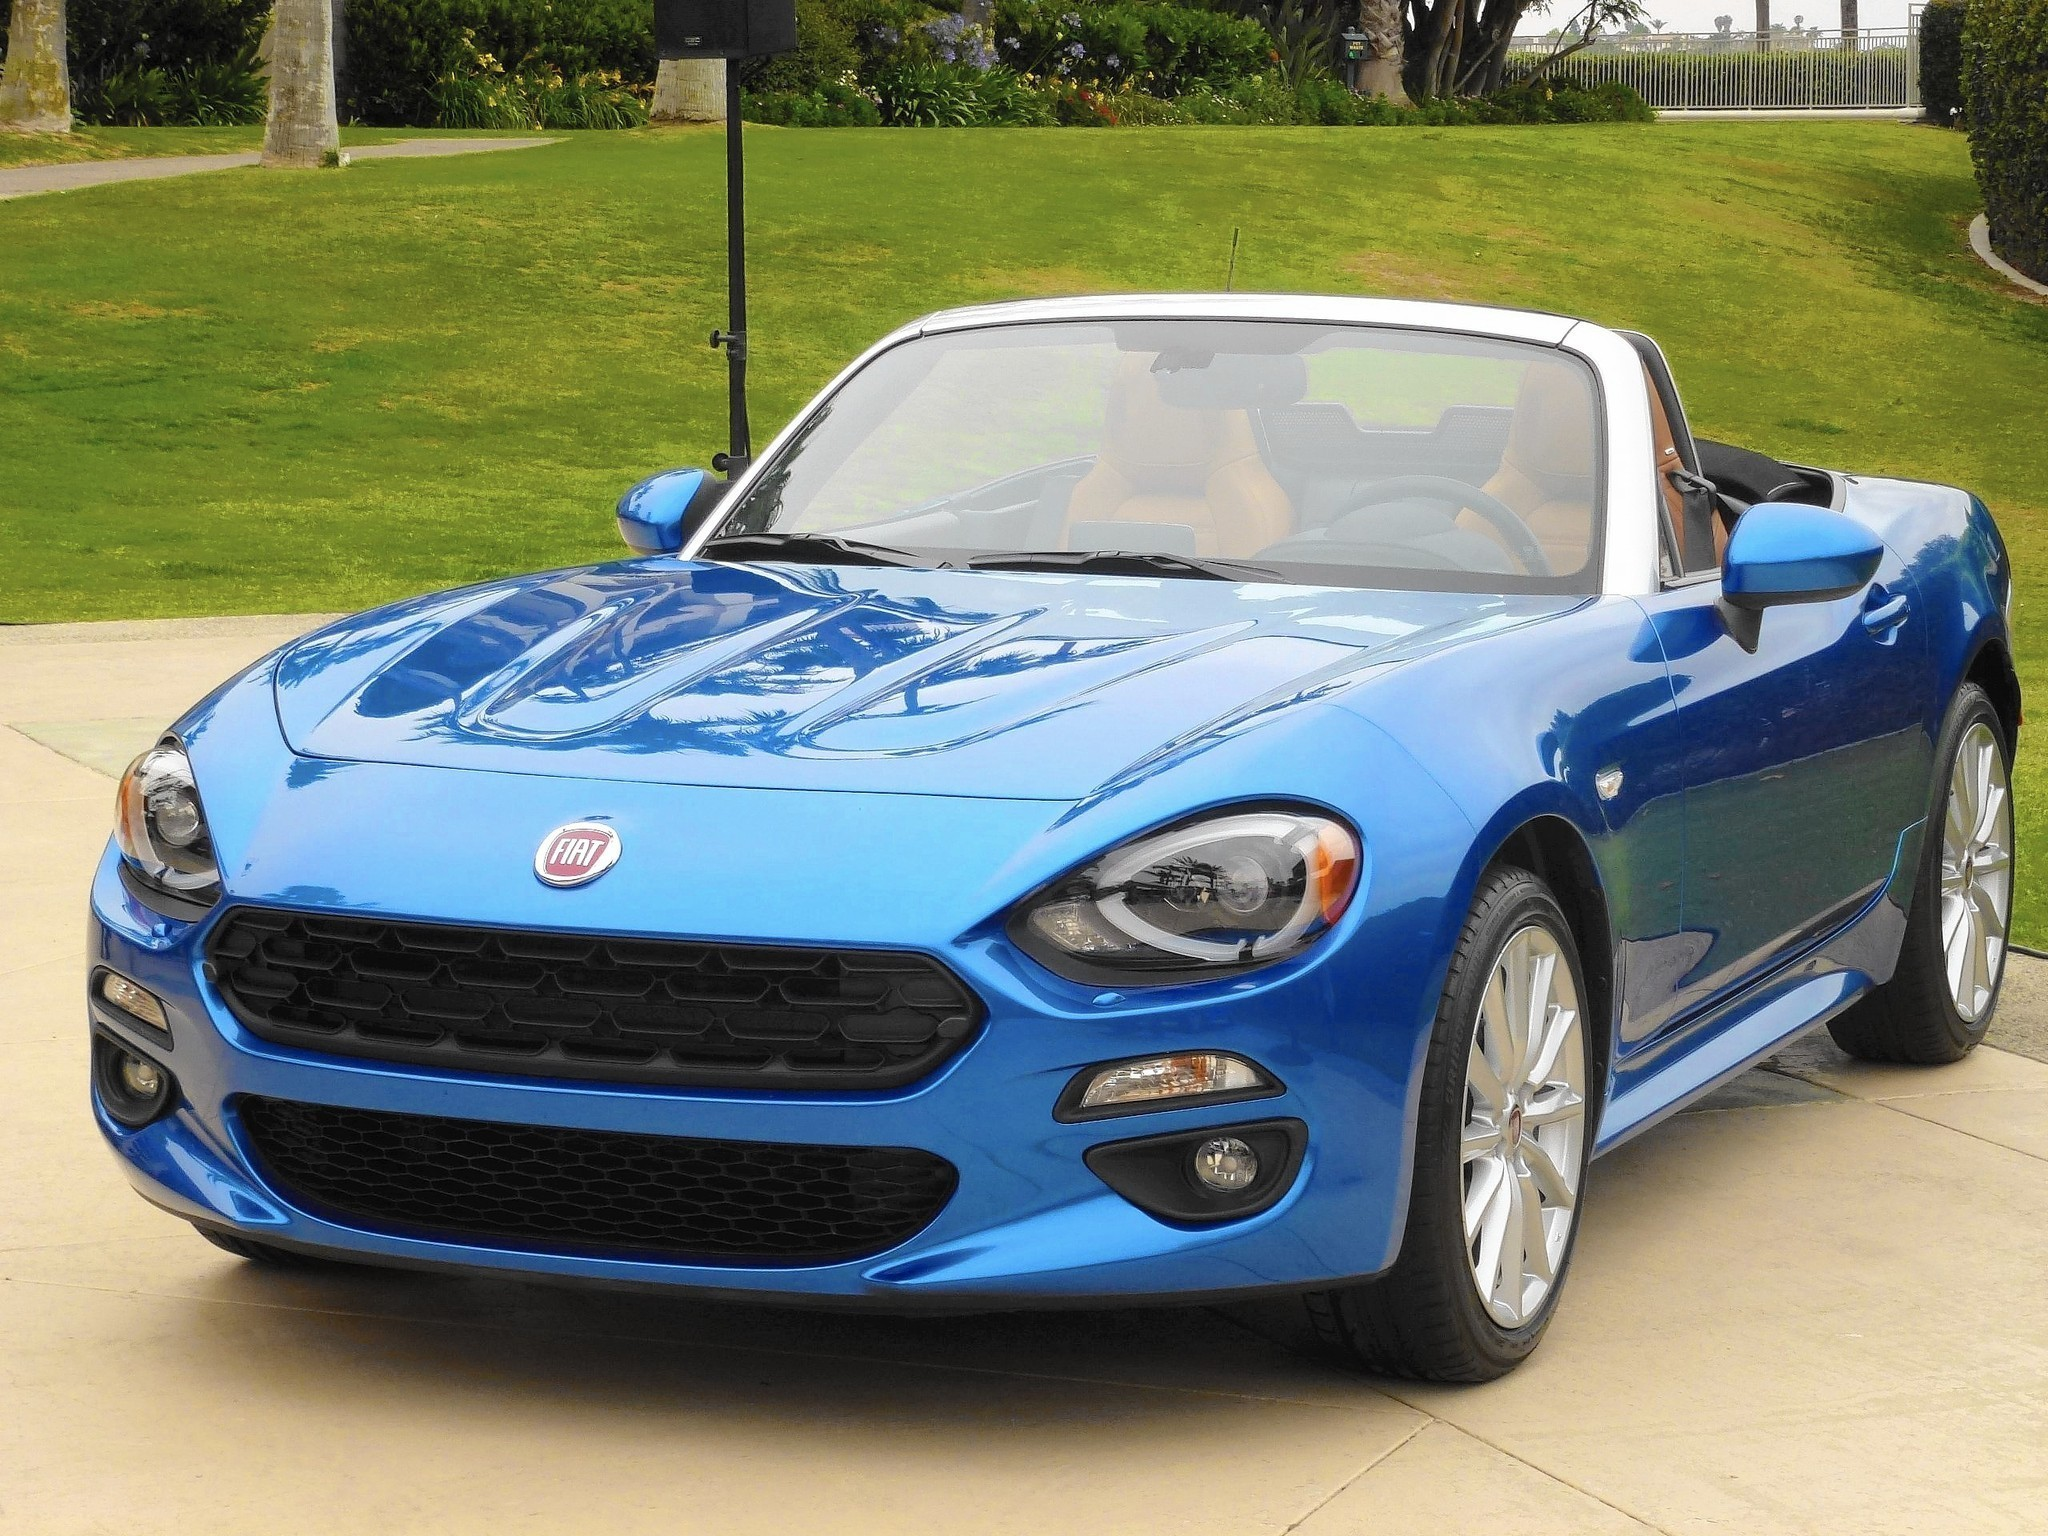 2017 Fiat 124 Spider Captures Spirit Of Original Despite Miata Dna Rear Axle Schematic Chicago Tribune